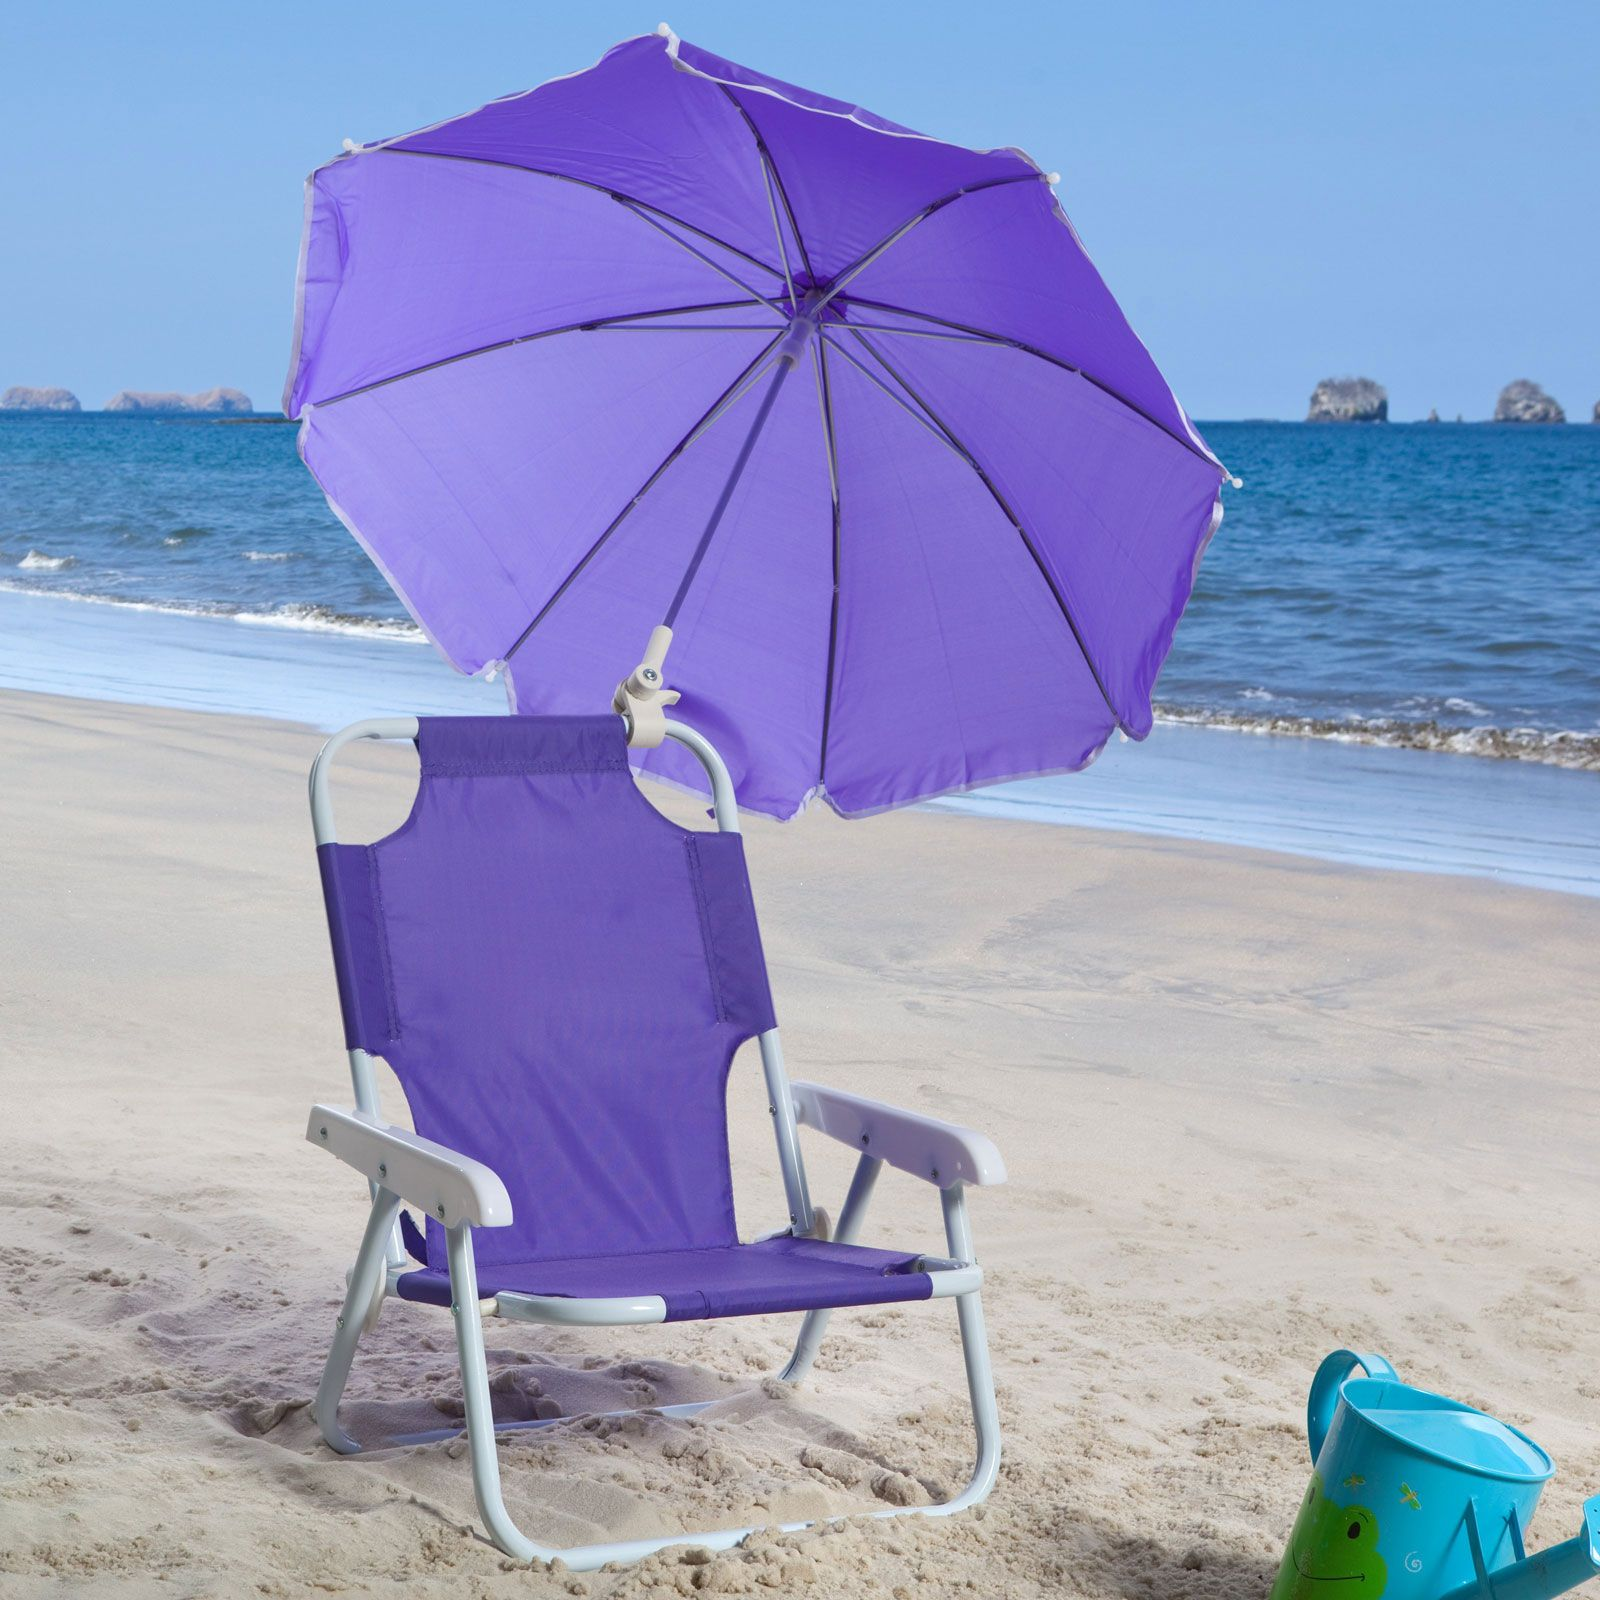 Camping chairs with umbrella - 14 Inspiring Kids Chair With Umbrella Pic Ideas